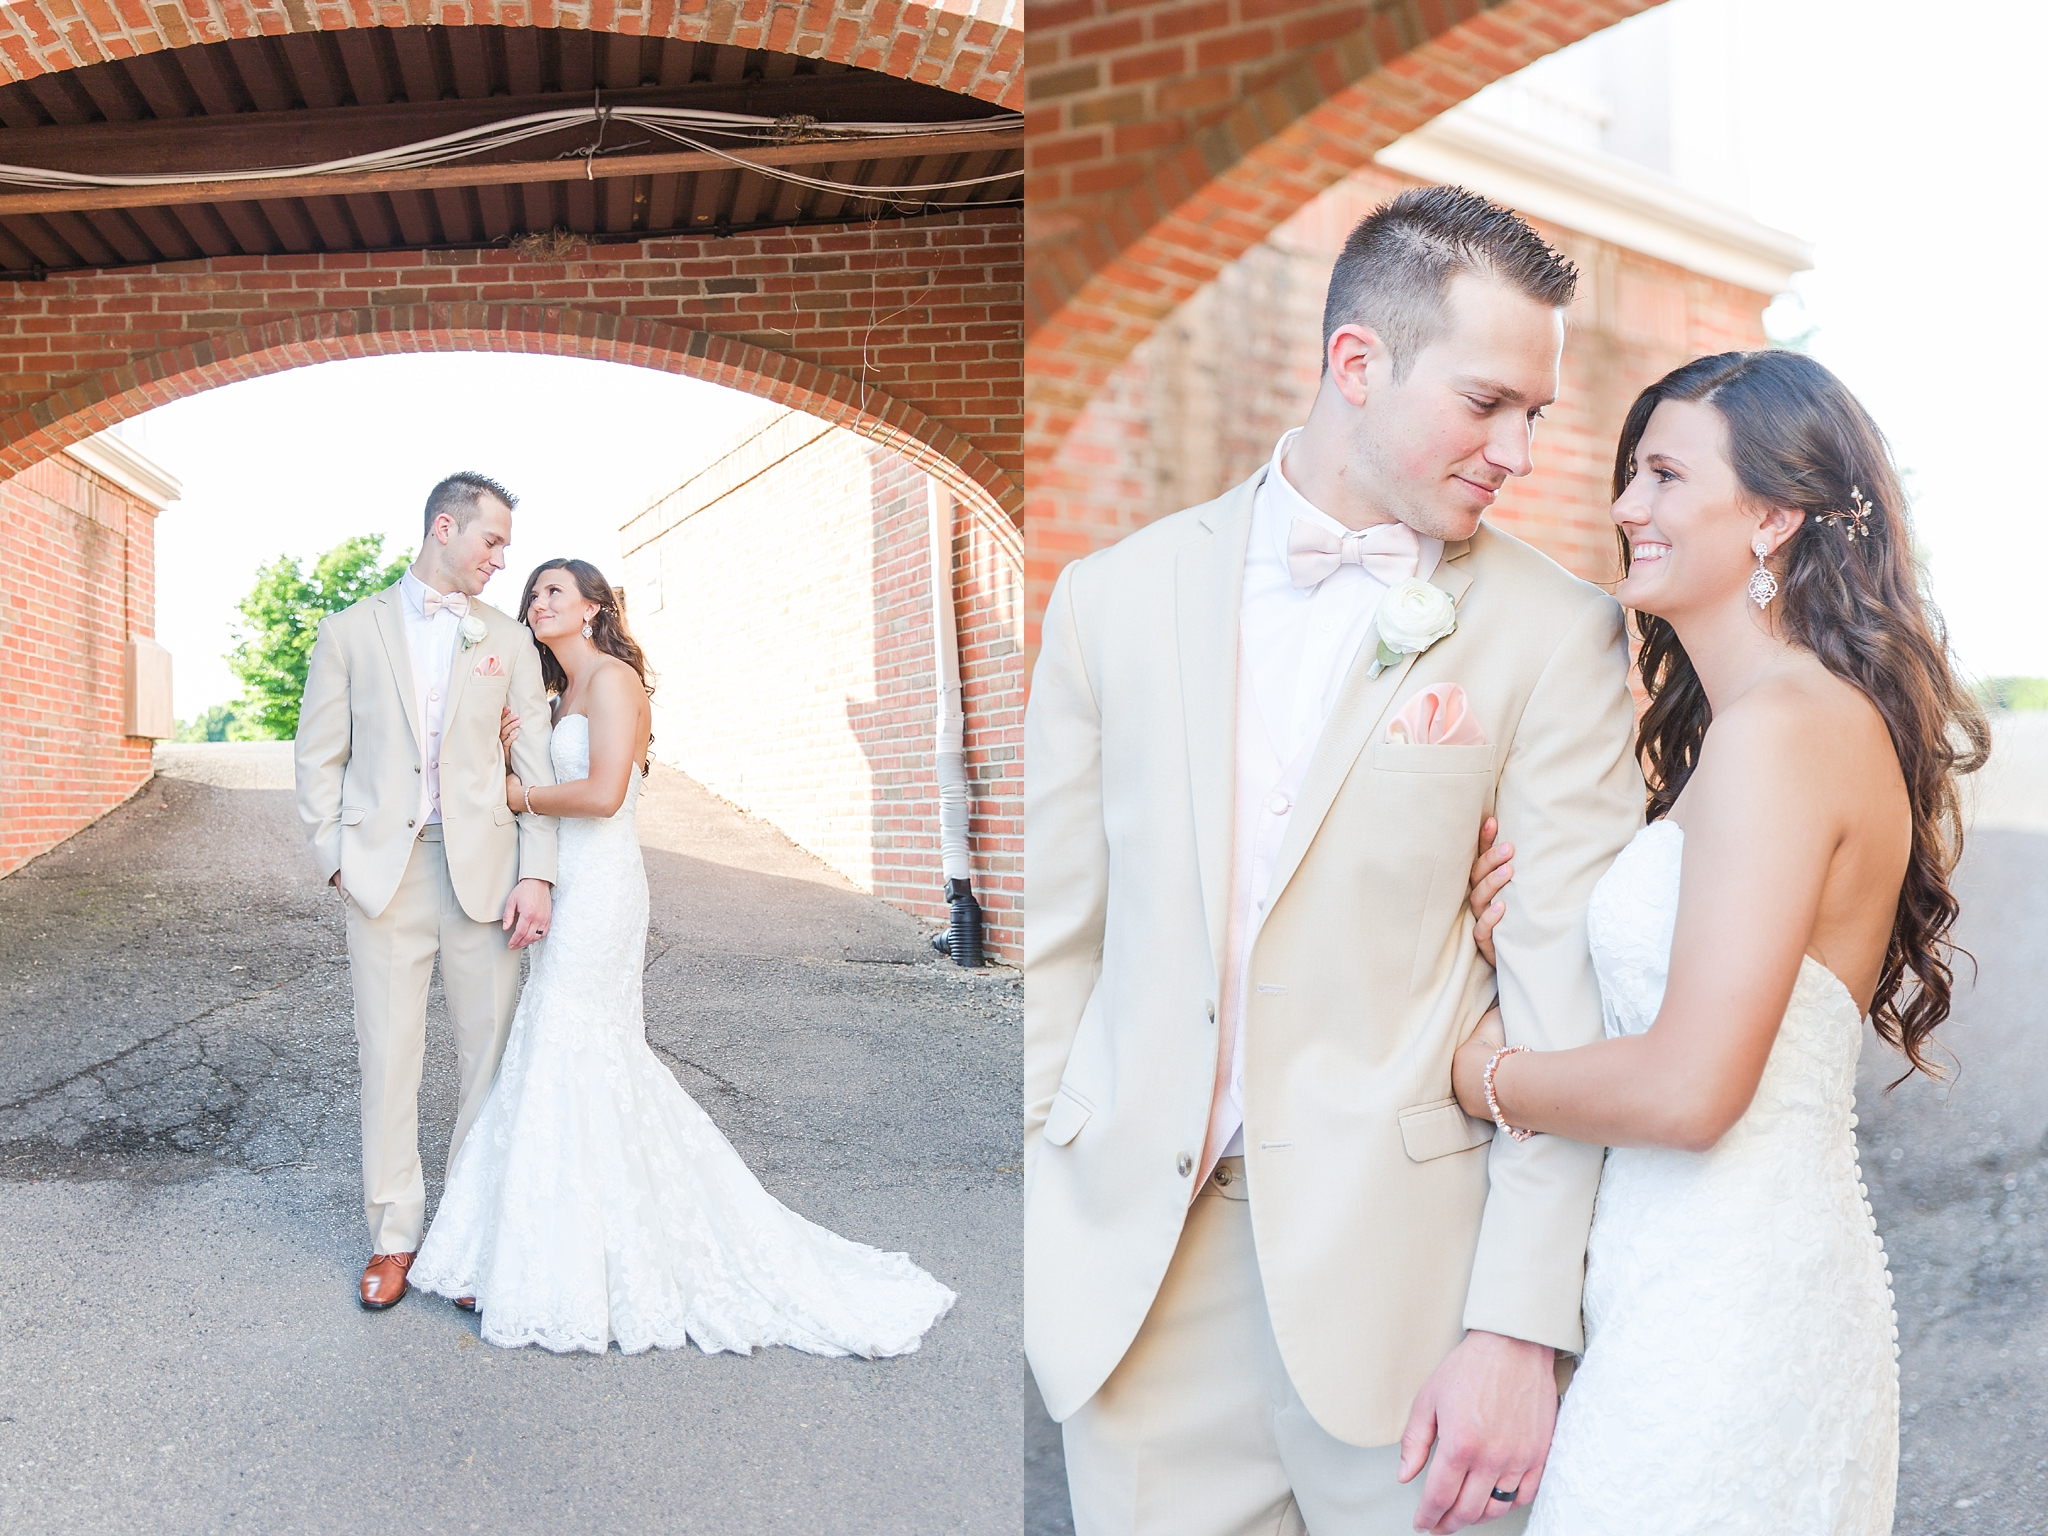 candid-timeless-wedding-photos-at-the-captains-club-in-grand-blanc-michigan-by-courtney-carolyn-photography_0063.jpg